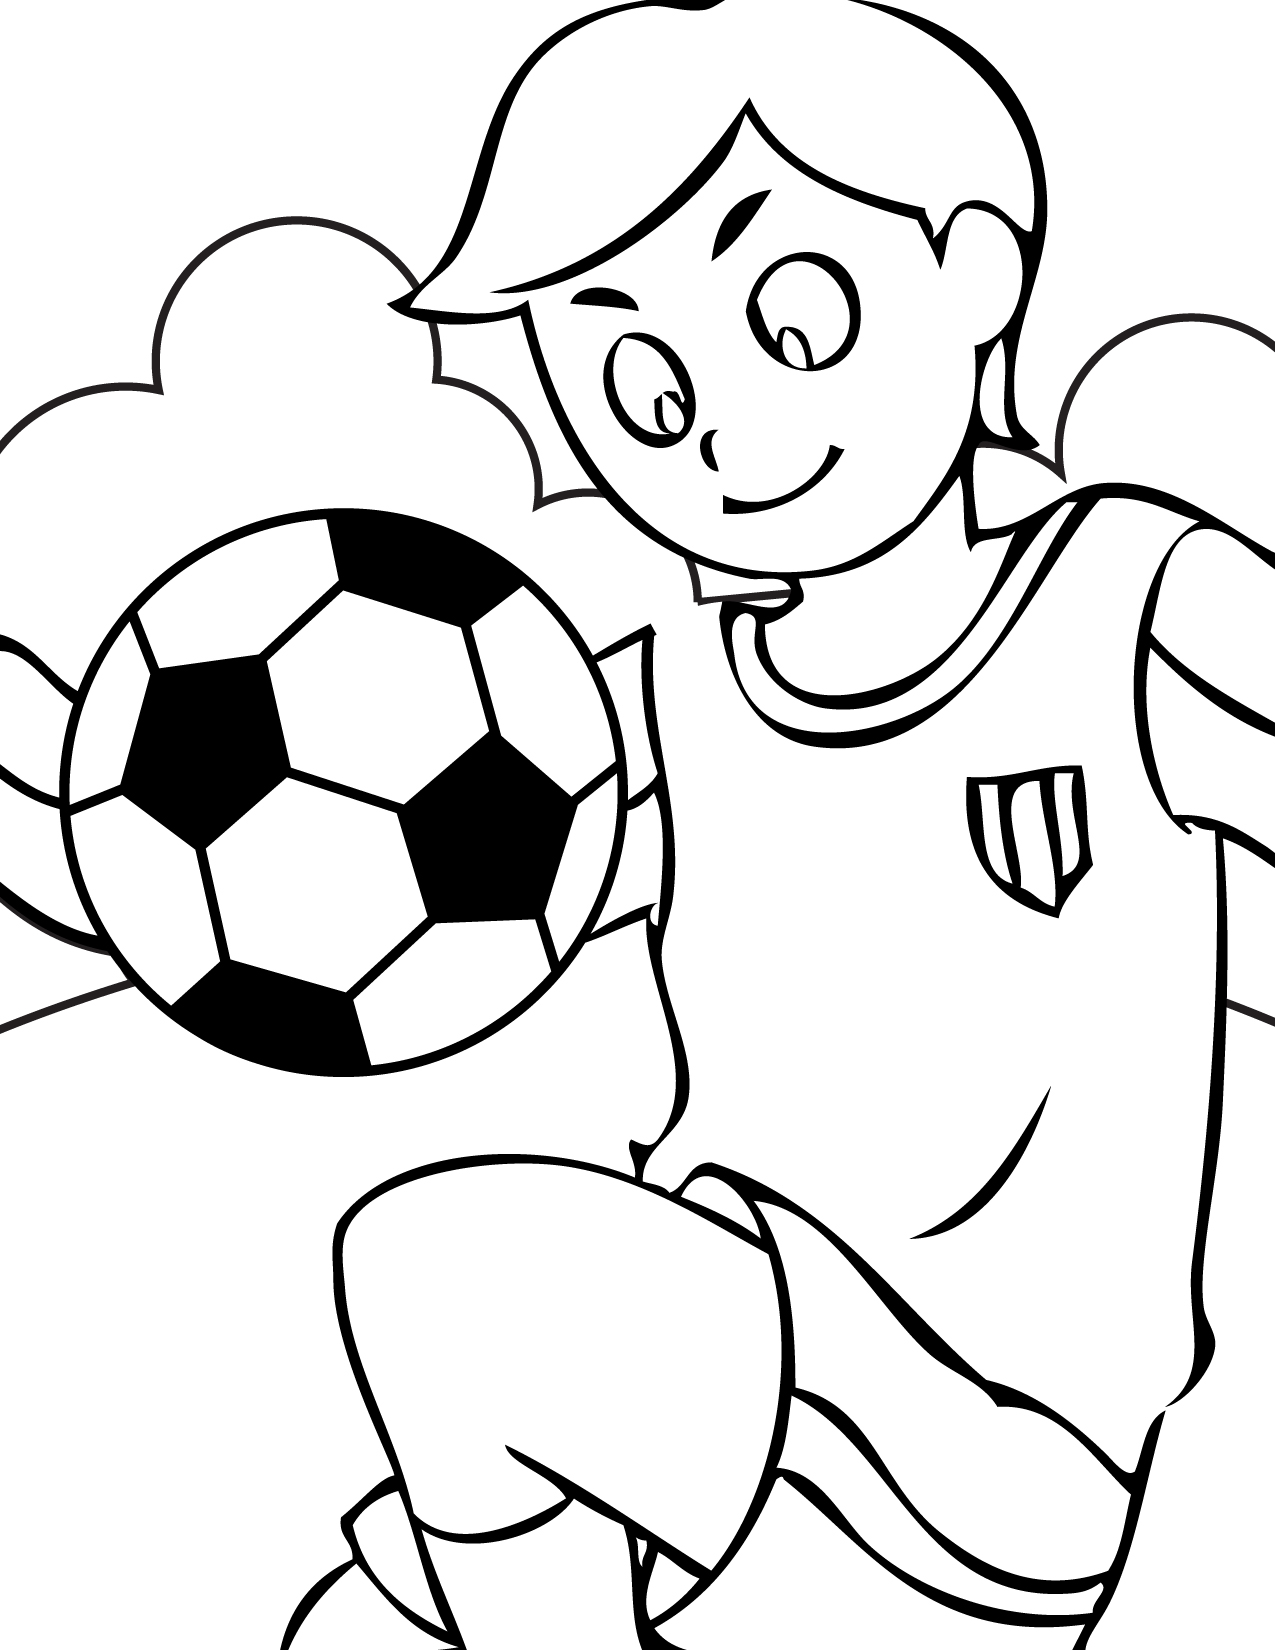 free printable sports coloring pages for kids. Black Bedroom Furniture Sets. Home Design Ideas